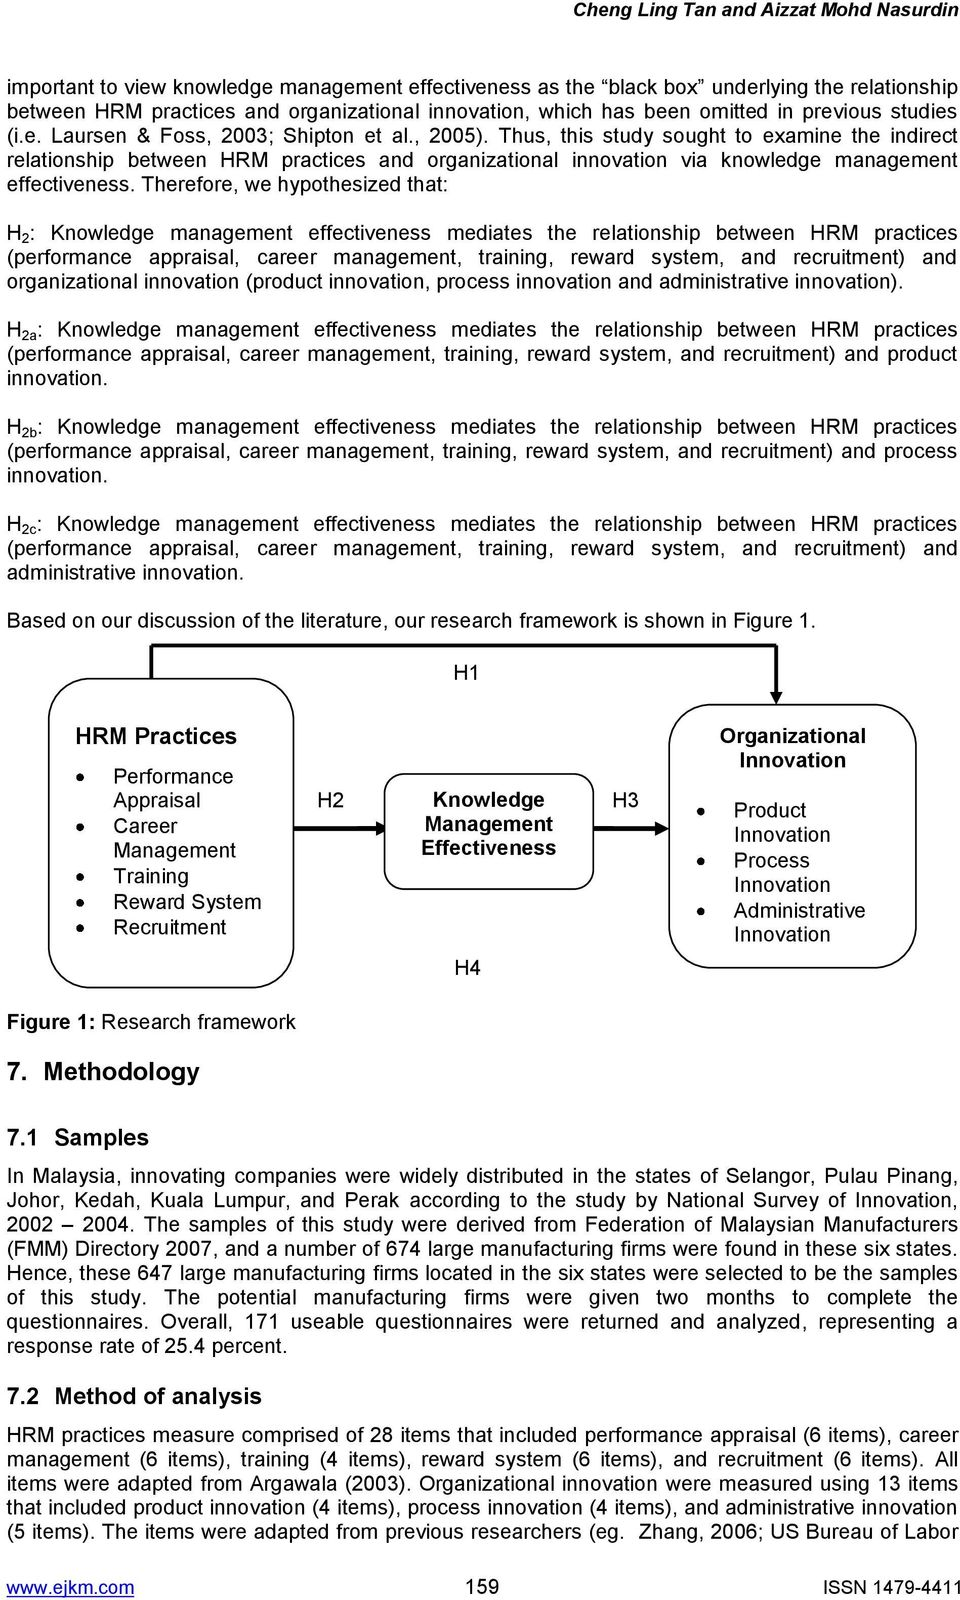 Thus, this study sought to examine the indirect relationship between HRM practices and organizational innovation via knowledge management effectiveness.